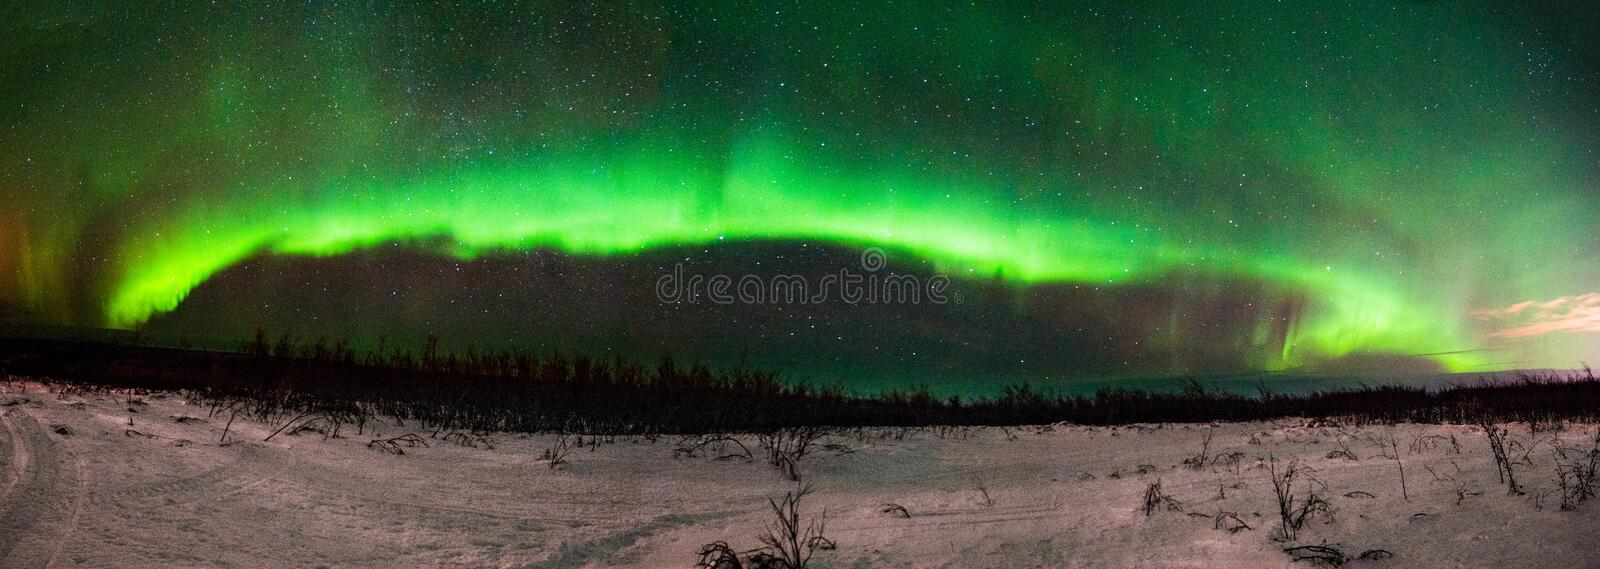 Aurora BorealisNorthern Lights Panorama von Fairbanks Alaska stockbilder